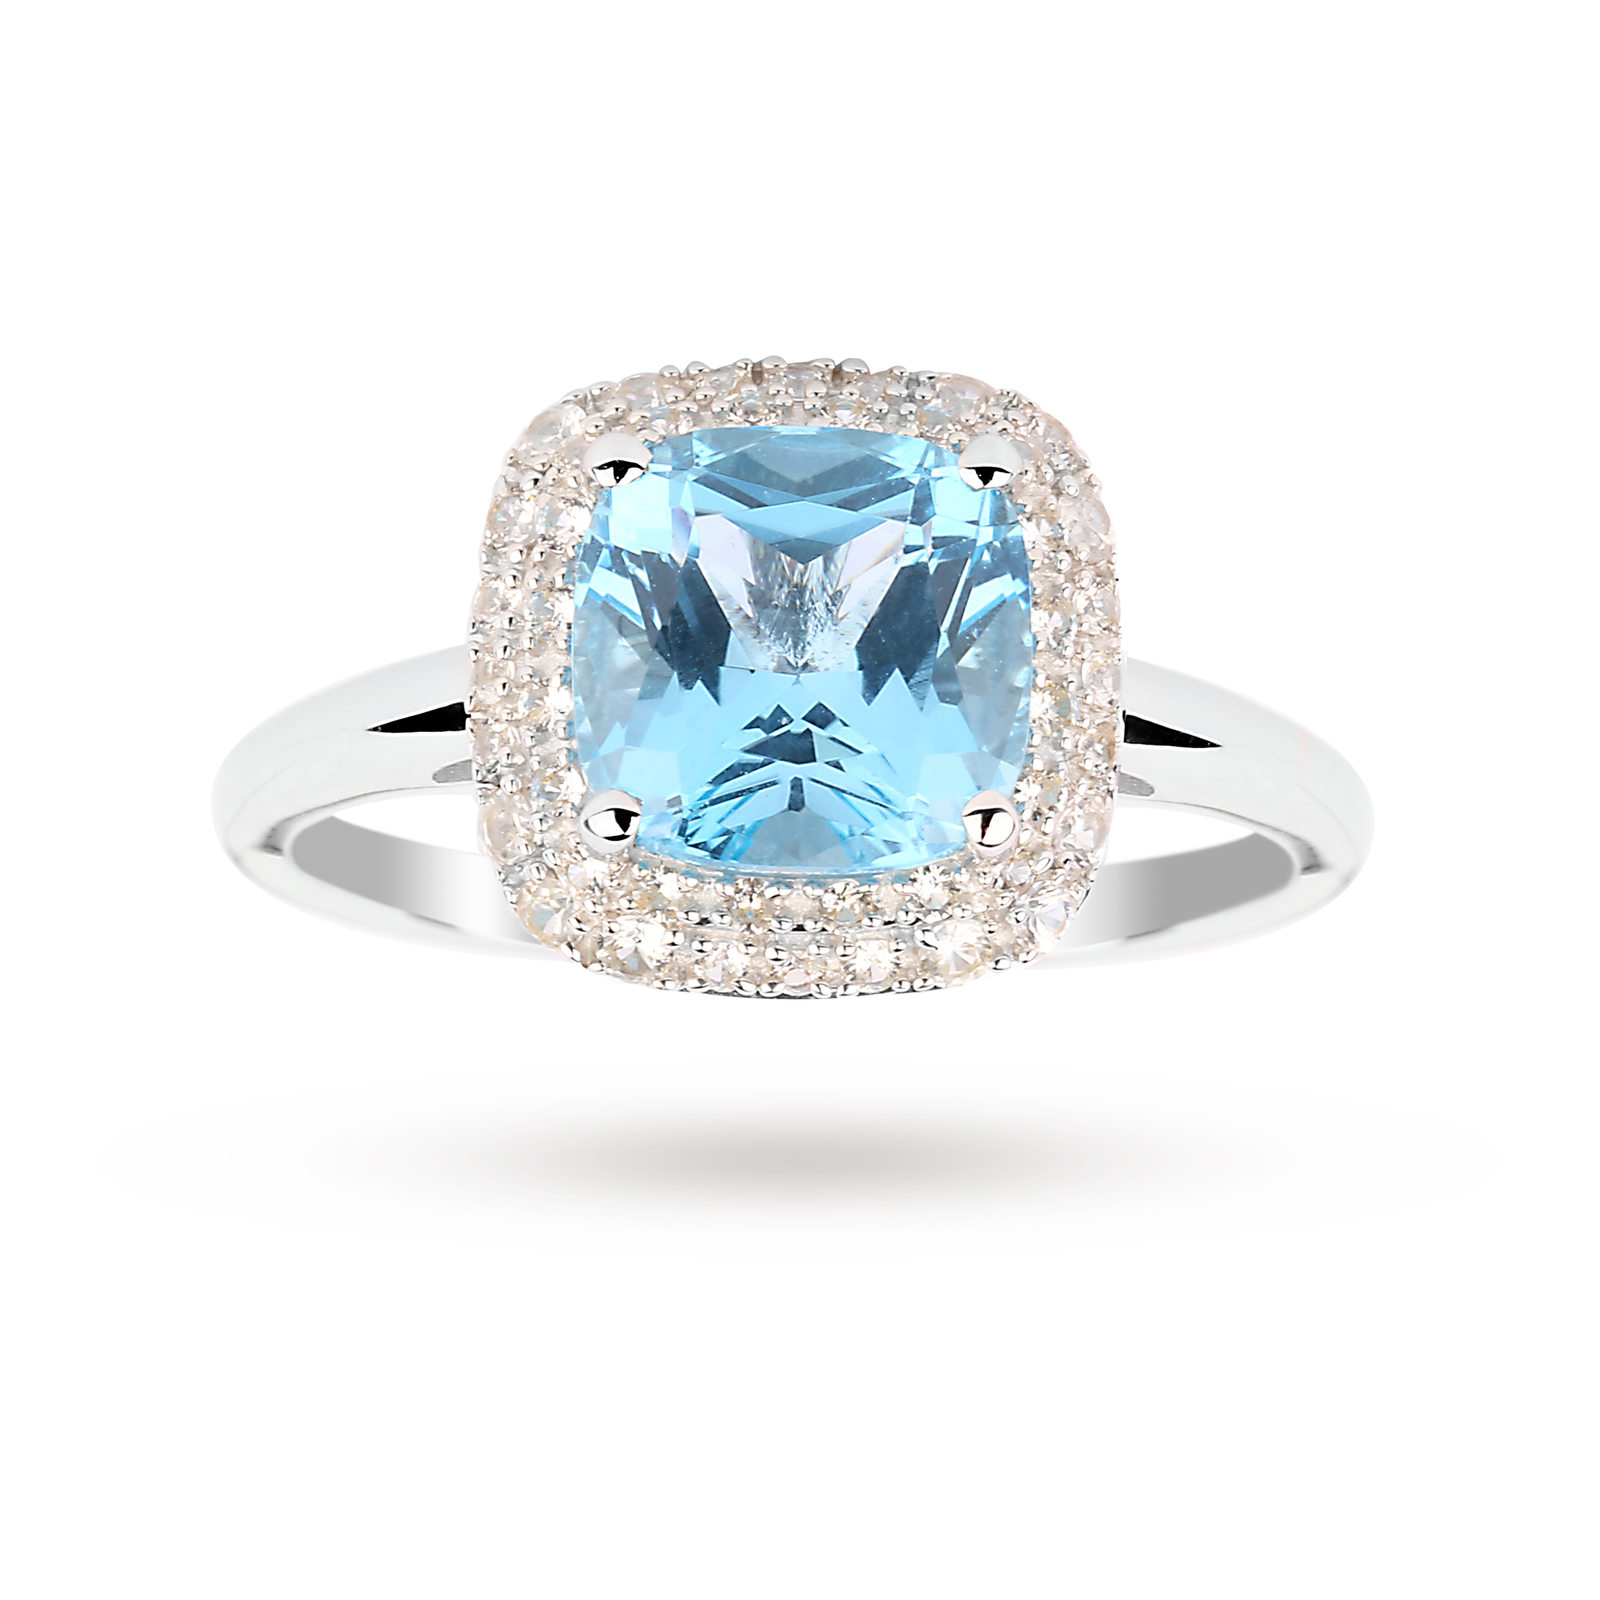 Blue Topaz and White Sapphire Ring in 9 Carat White Gold